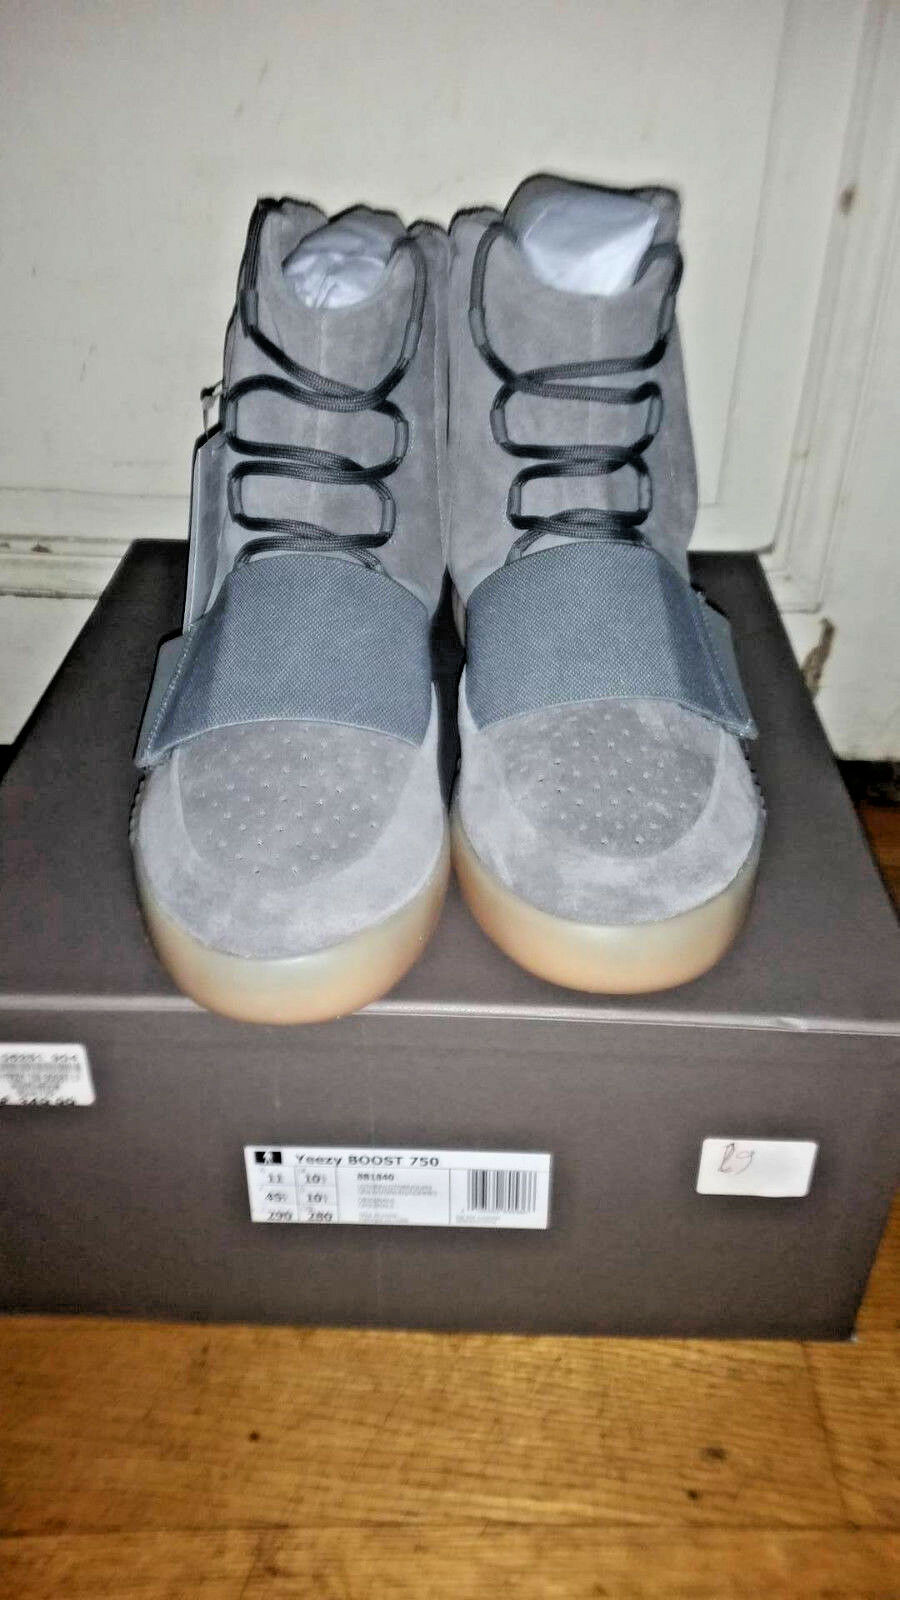 new style 491dc 34225 ... Adidas X Kanye West YEEZY 750 Gris Gum OG ALL DS d2237d ...